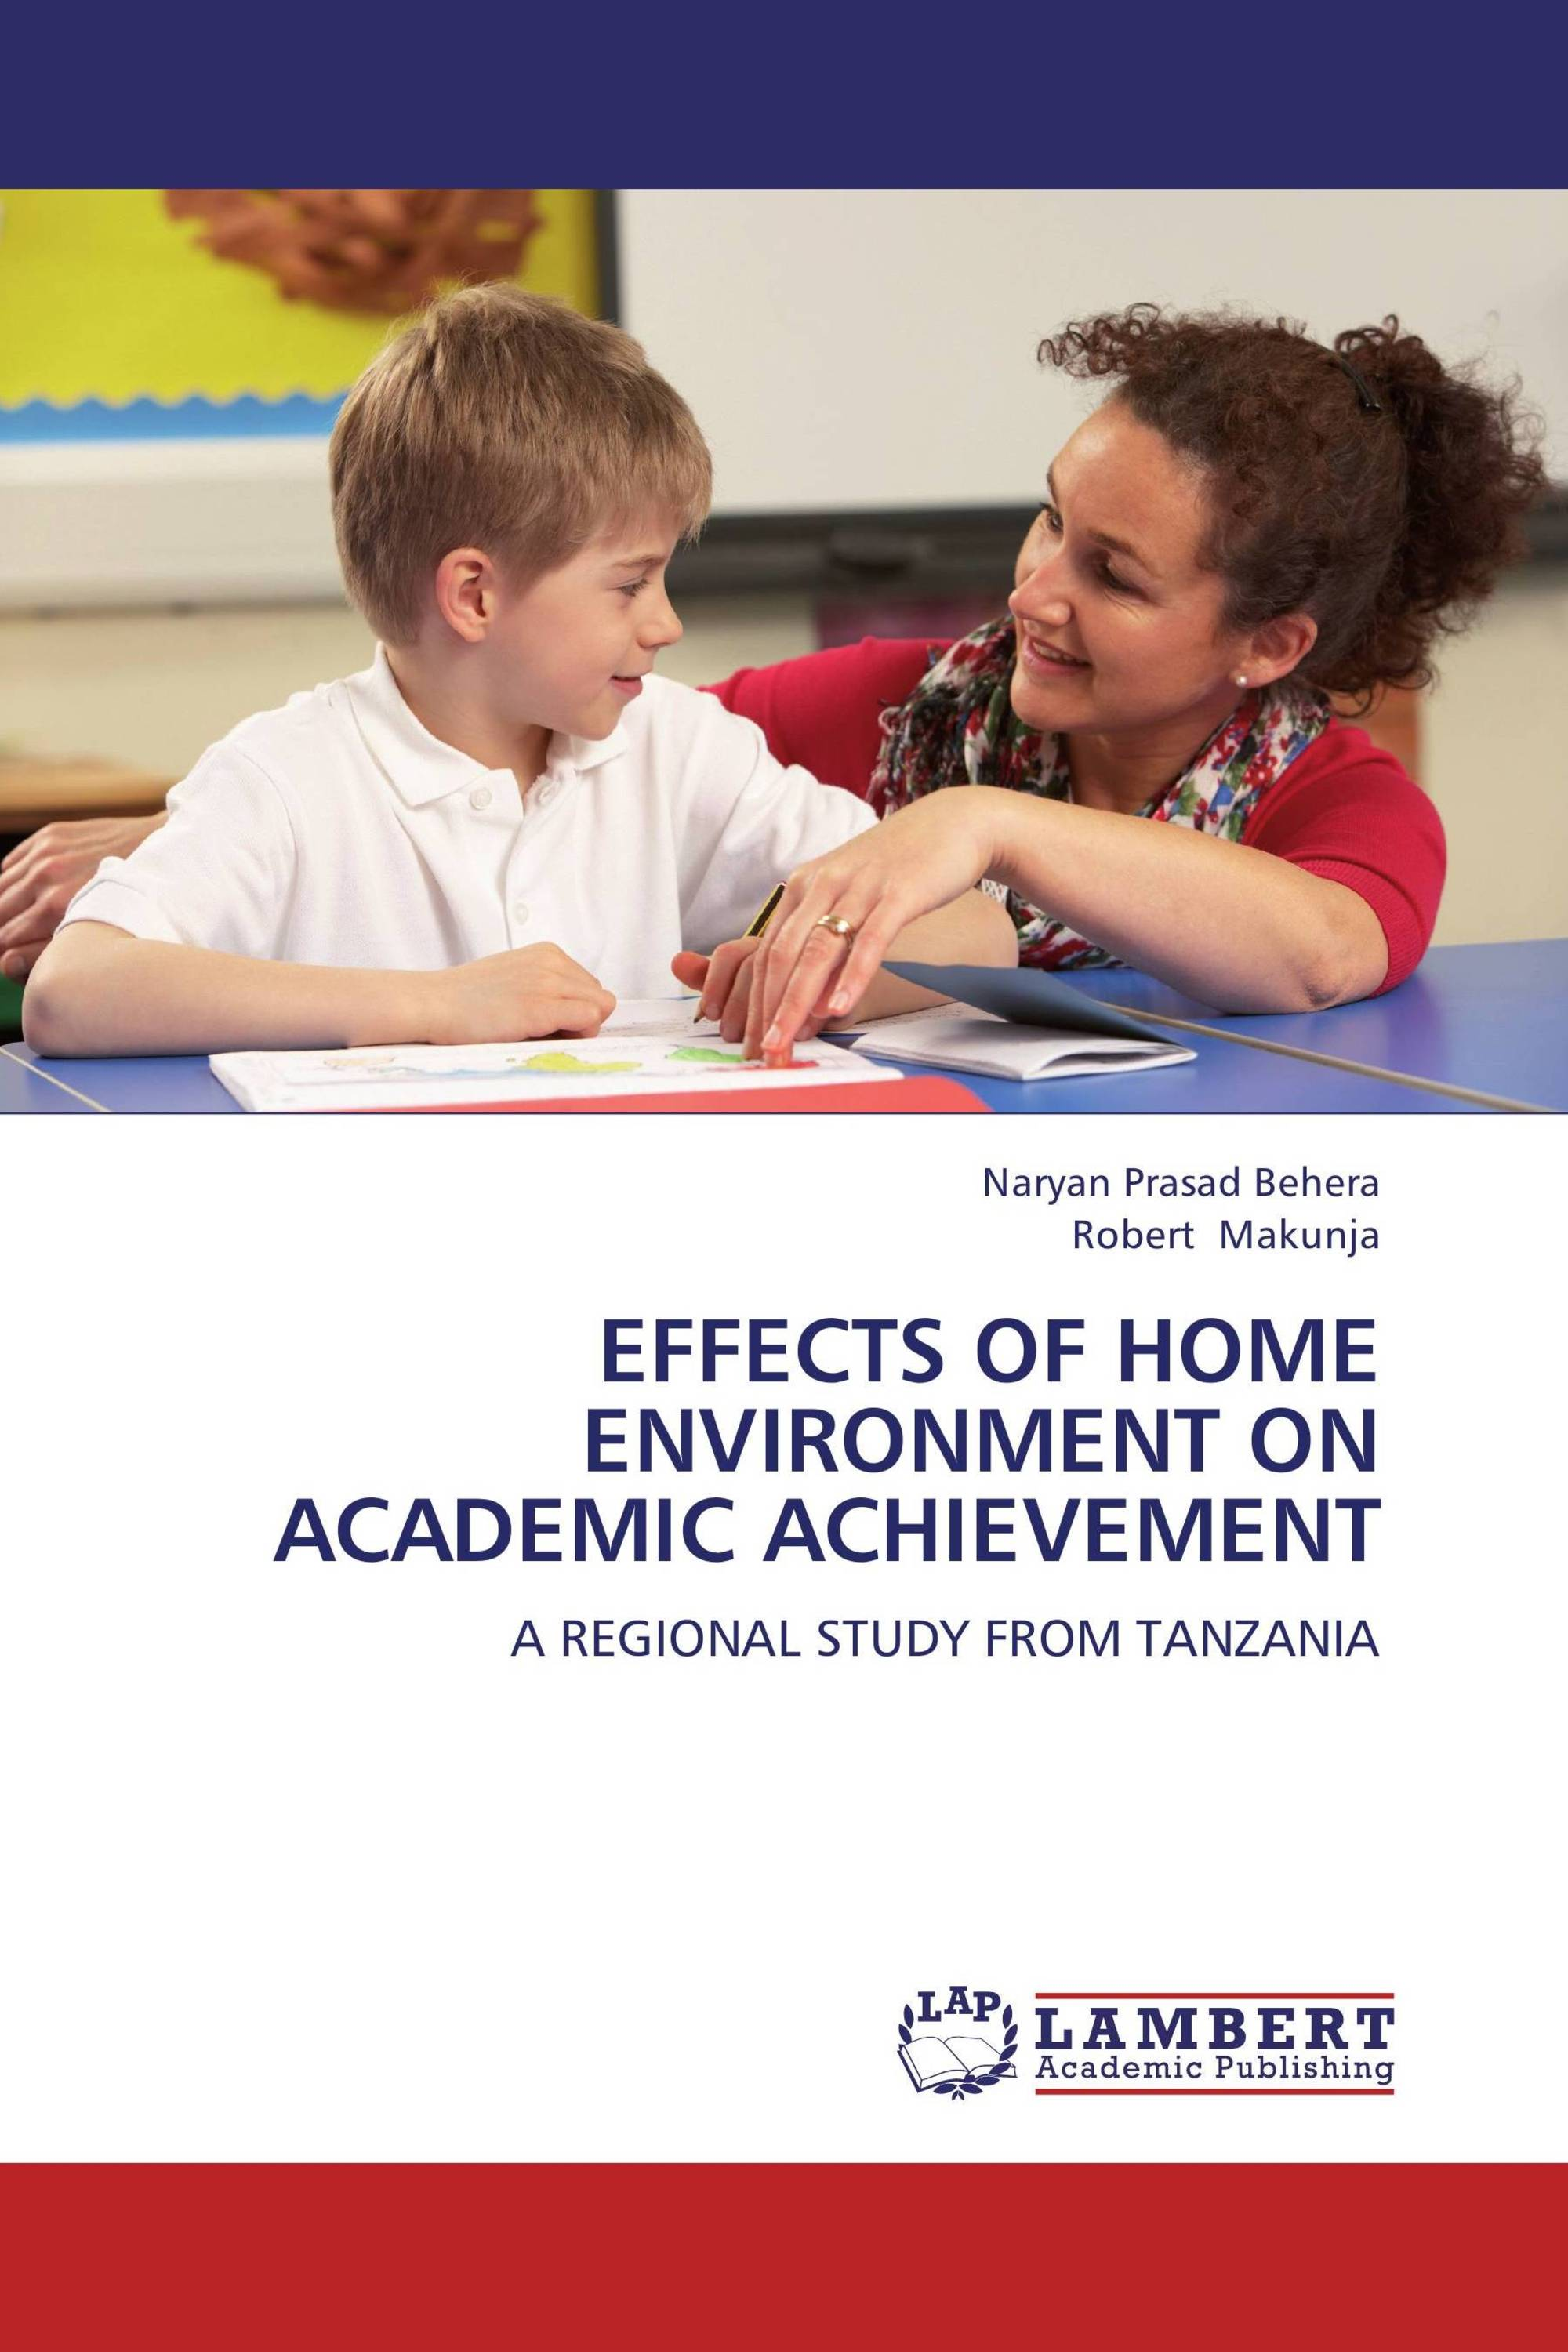 thesis academic achievement The affect of parenting style on academic achievement in early years education ( thesis) university of hong kong, pokfulam, hong kong sar retrieved from http ://dxdoiorg/105353/th_b5210236 abstract, lack of parental involvement is one of the biggest challenges schools face due to lack of support.